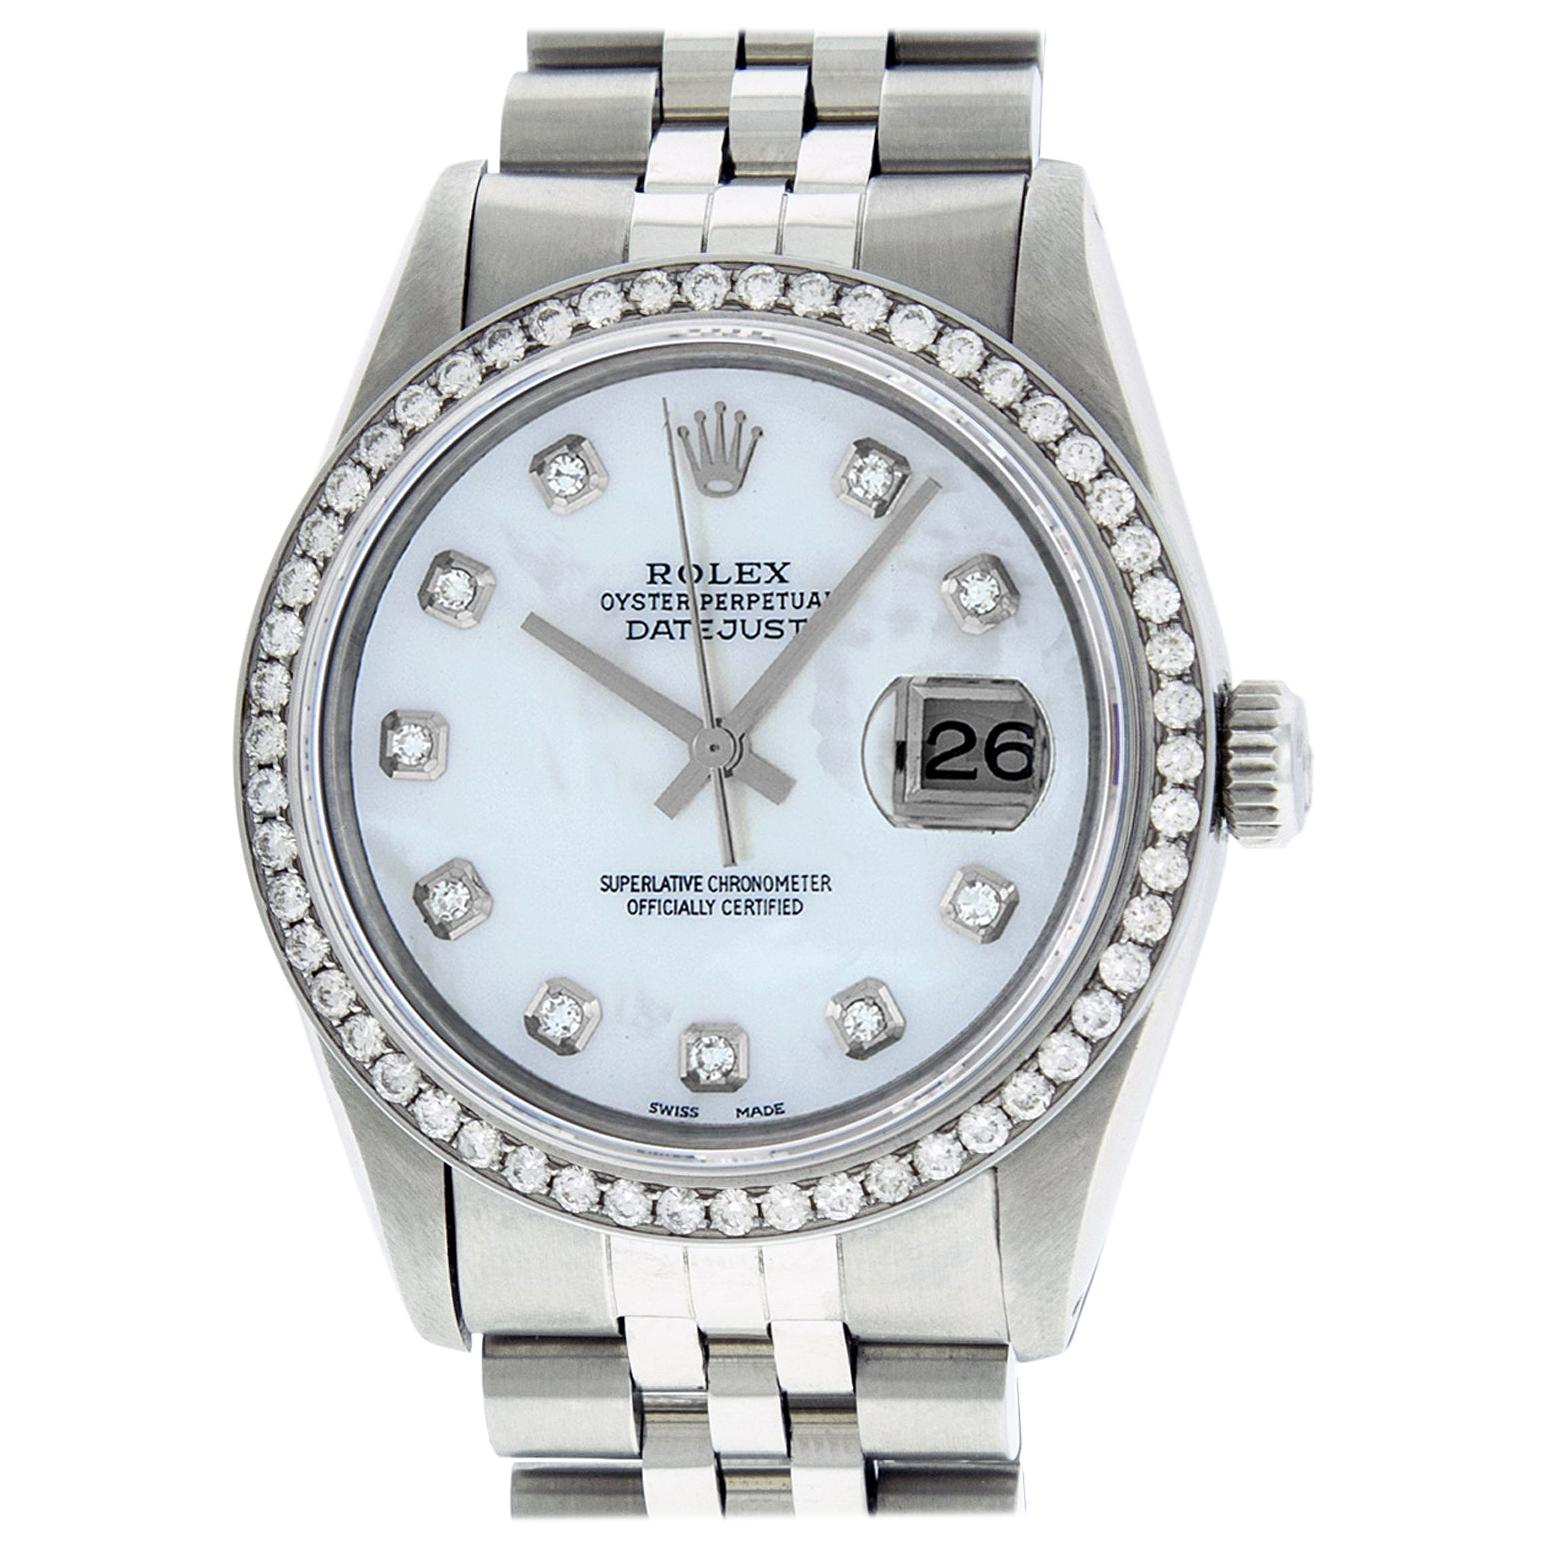 Rolex Men's Datejust Watch Stainless Steel Mother of Pearl Round Diamond Dial